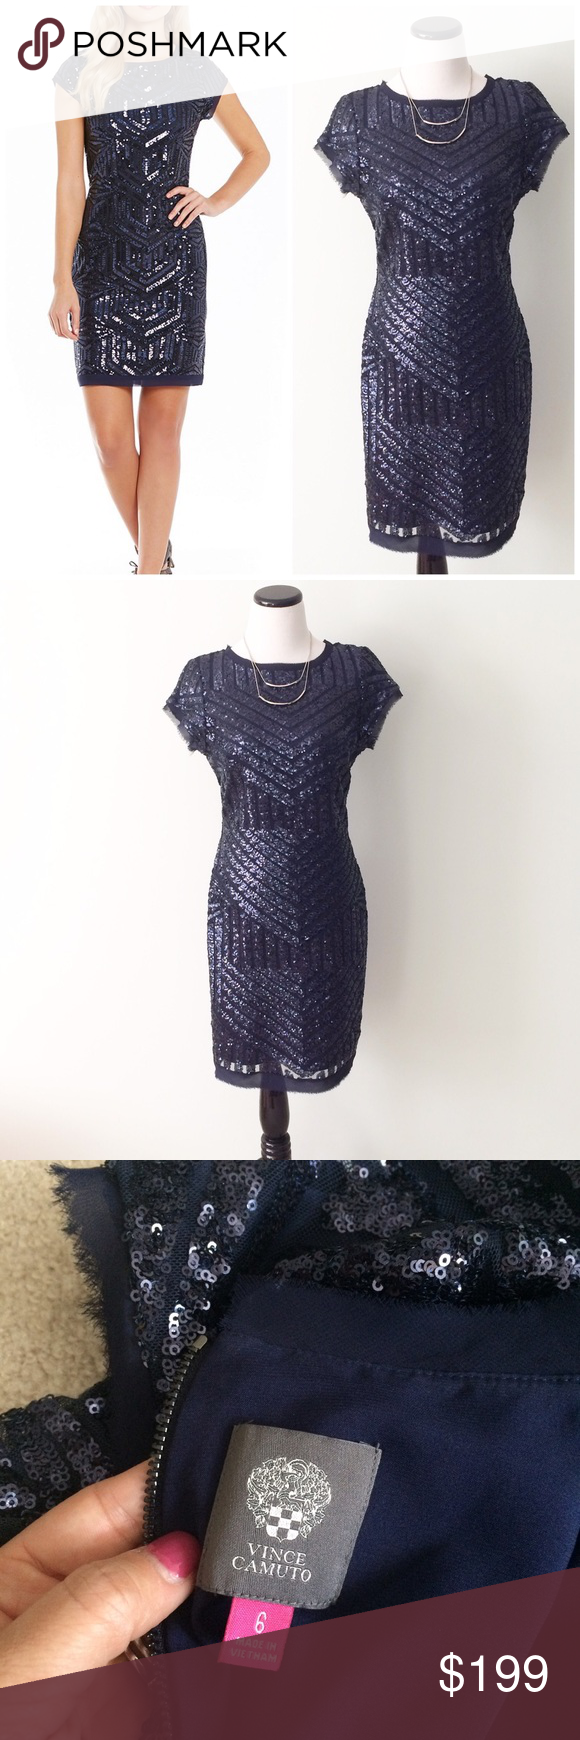 Vince Camuto Blue Sequined Geo Shift Sheath Dress Vince Camuto Geo Shift Sheath Dress In Navy Blue Sequins Worn Once To Clothes Design Fashion Design Fashion [ 1740 x 580 Pixel ]